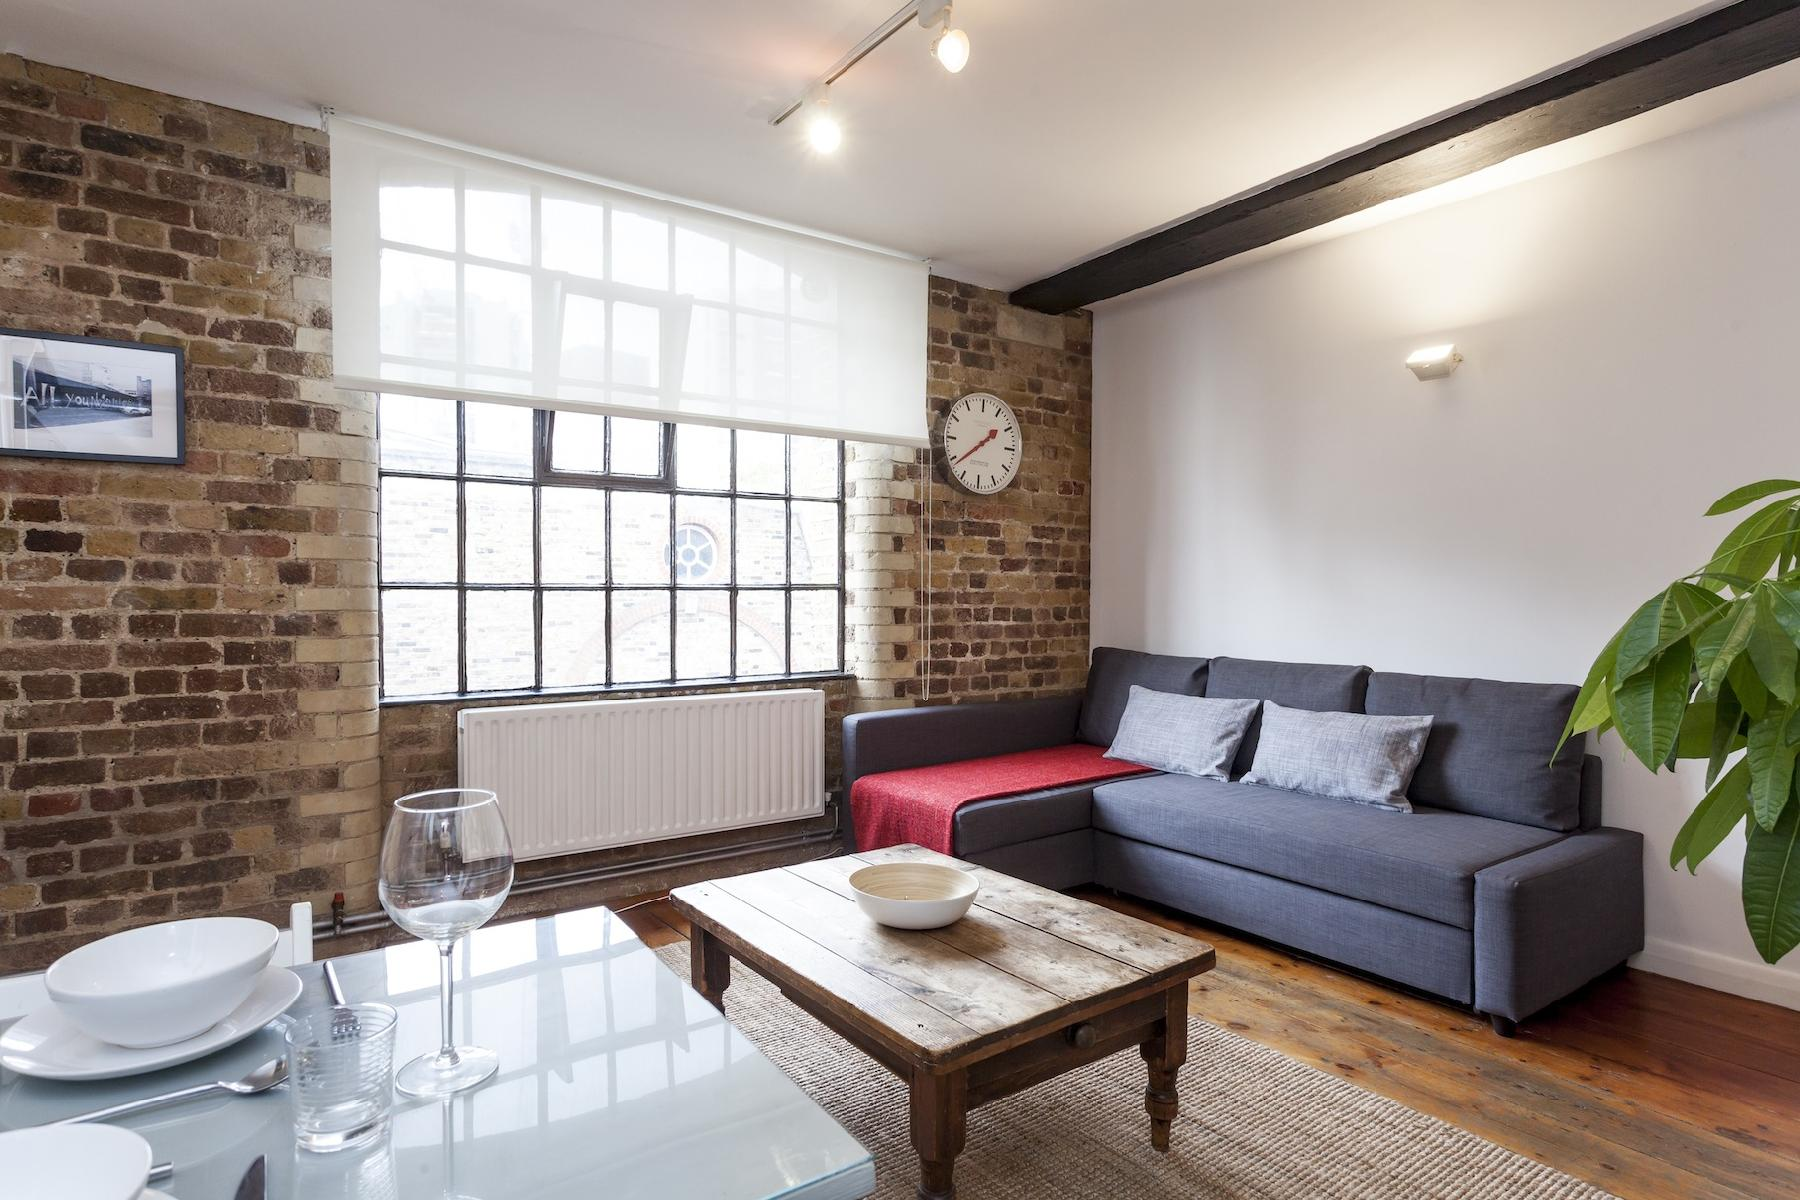 London - Stylish Warehouse Apartment